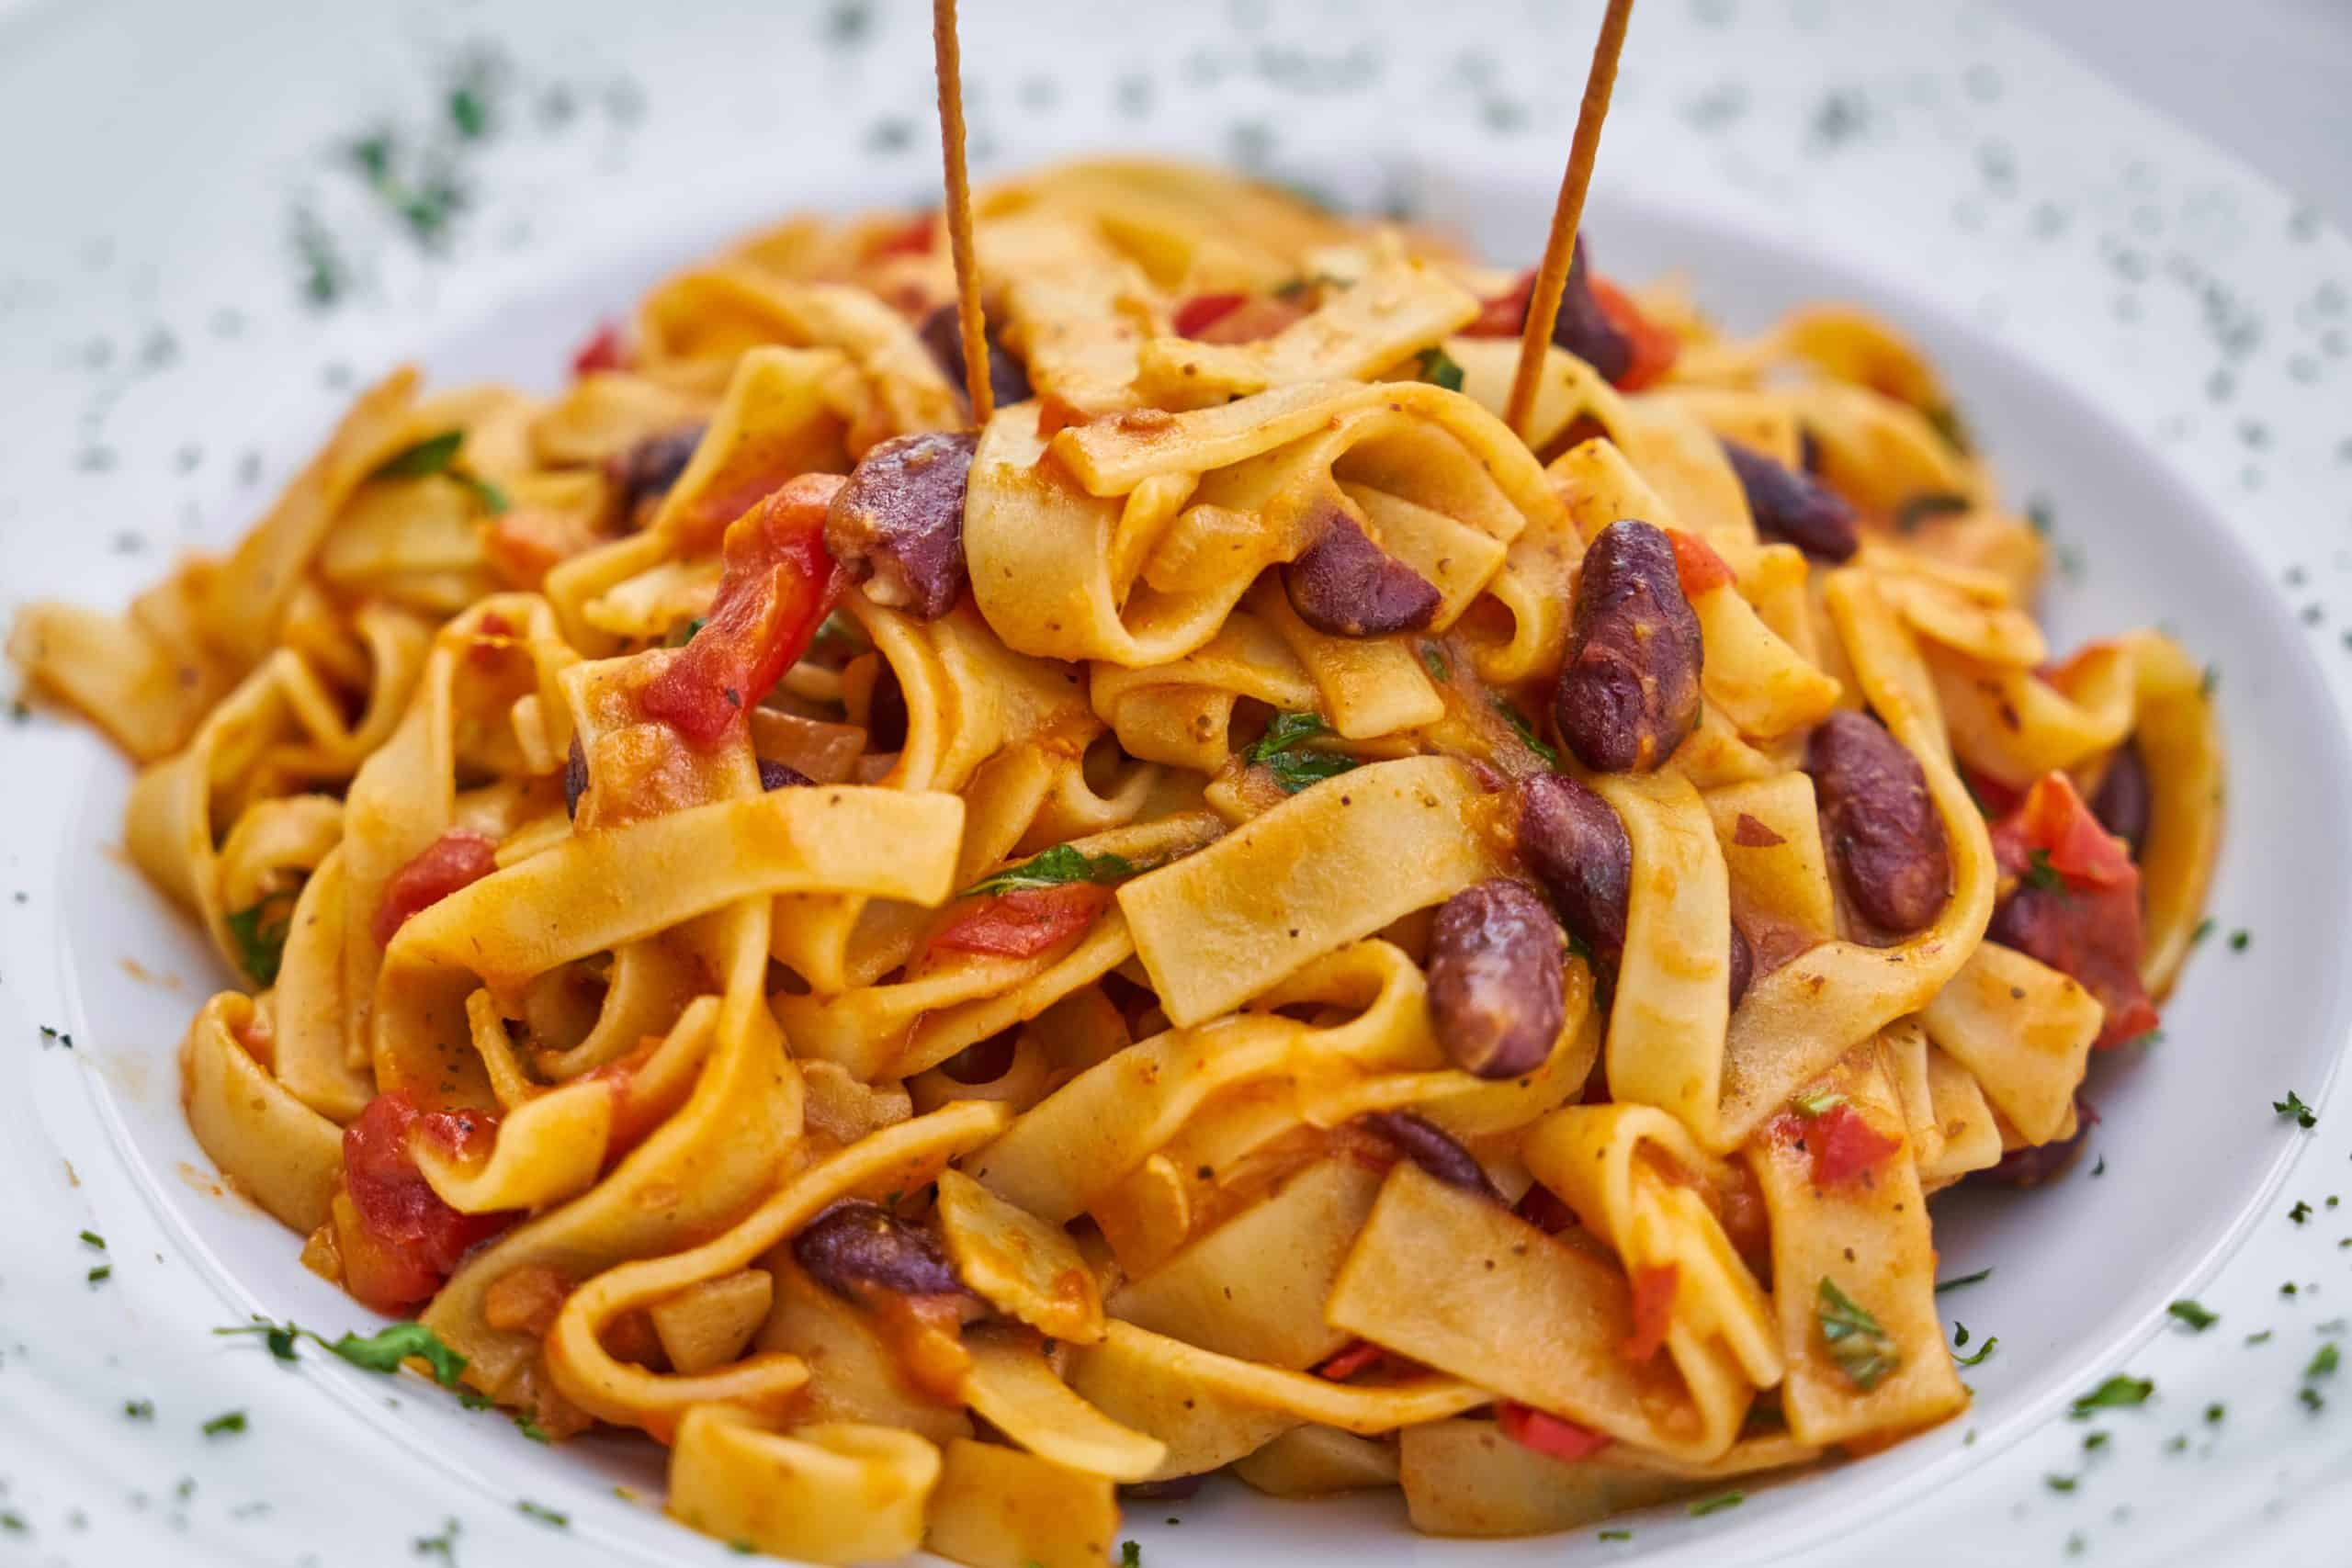 If You Are Searching For Delicious Italian Cuisines In Italian Restaurants